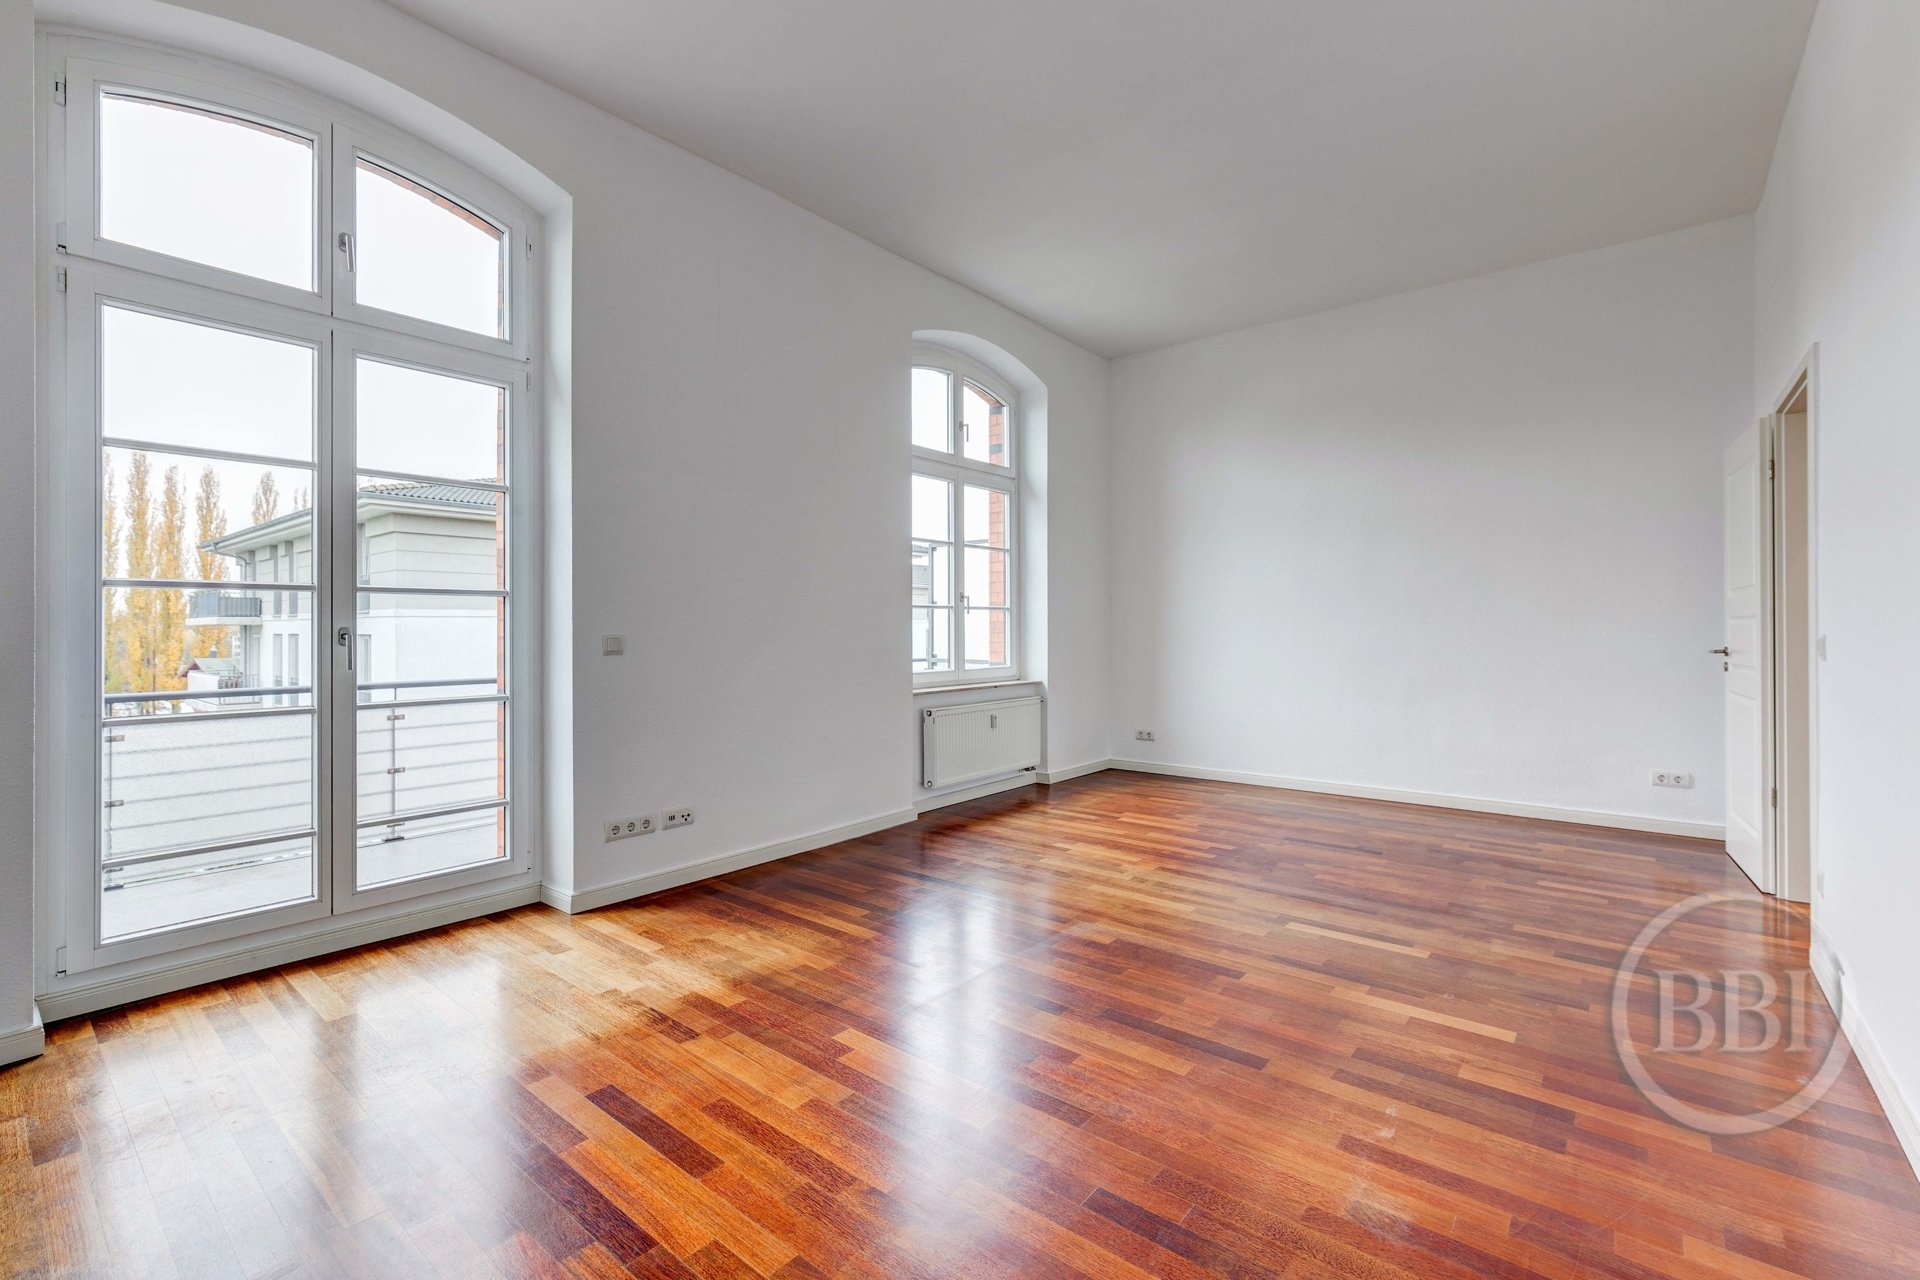 Apartment for sale recommended by BBI Immobilien